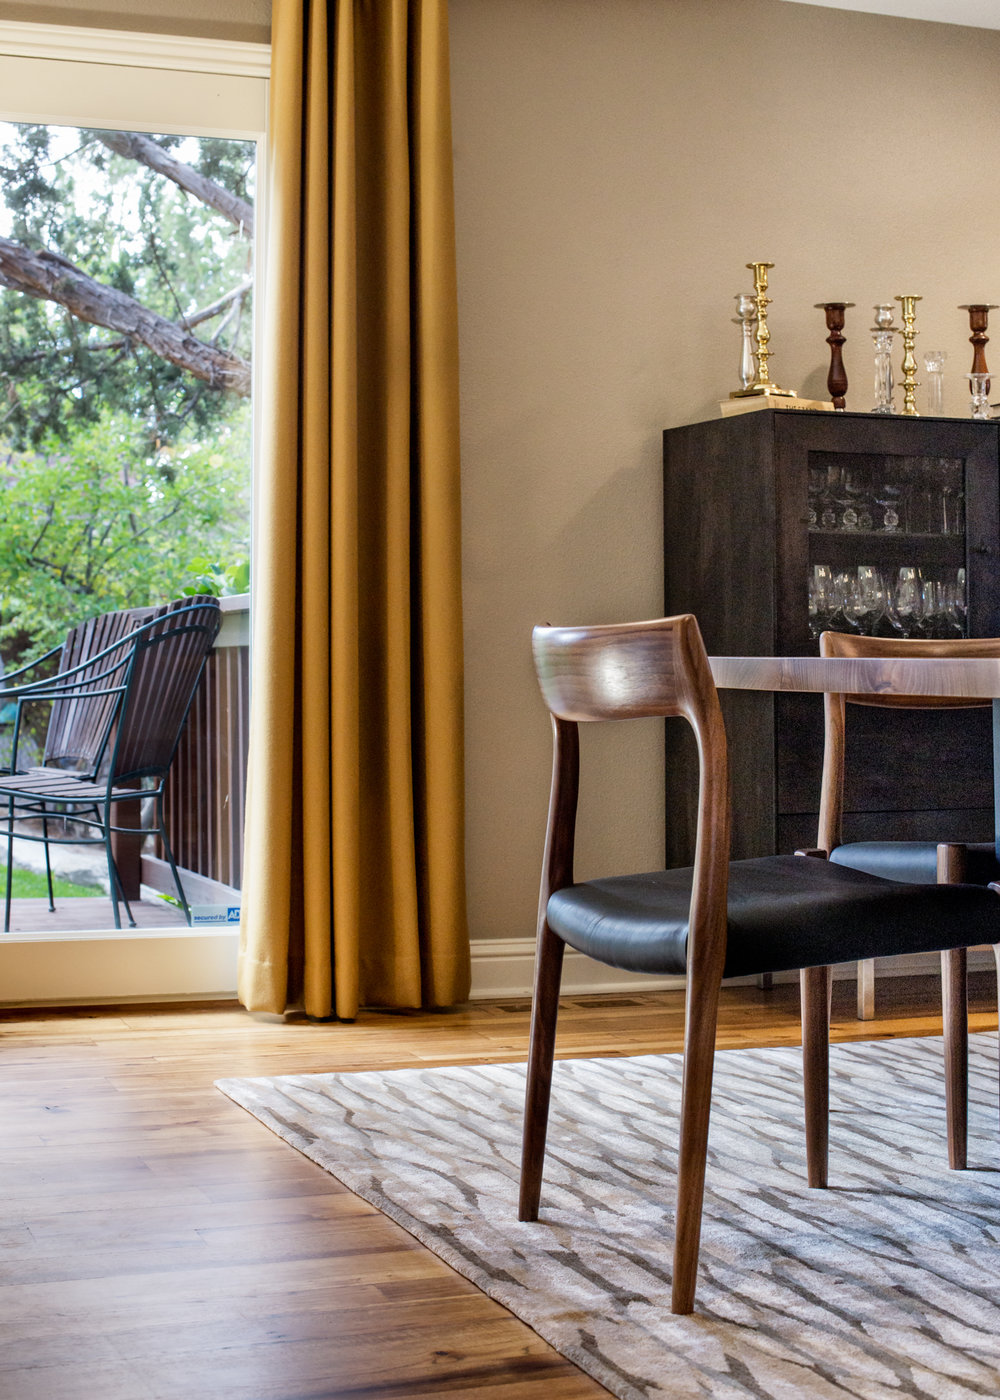 Contemporary Dining Room accessory selection and interior design - Reno, Nevada - Kovac Design